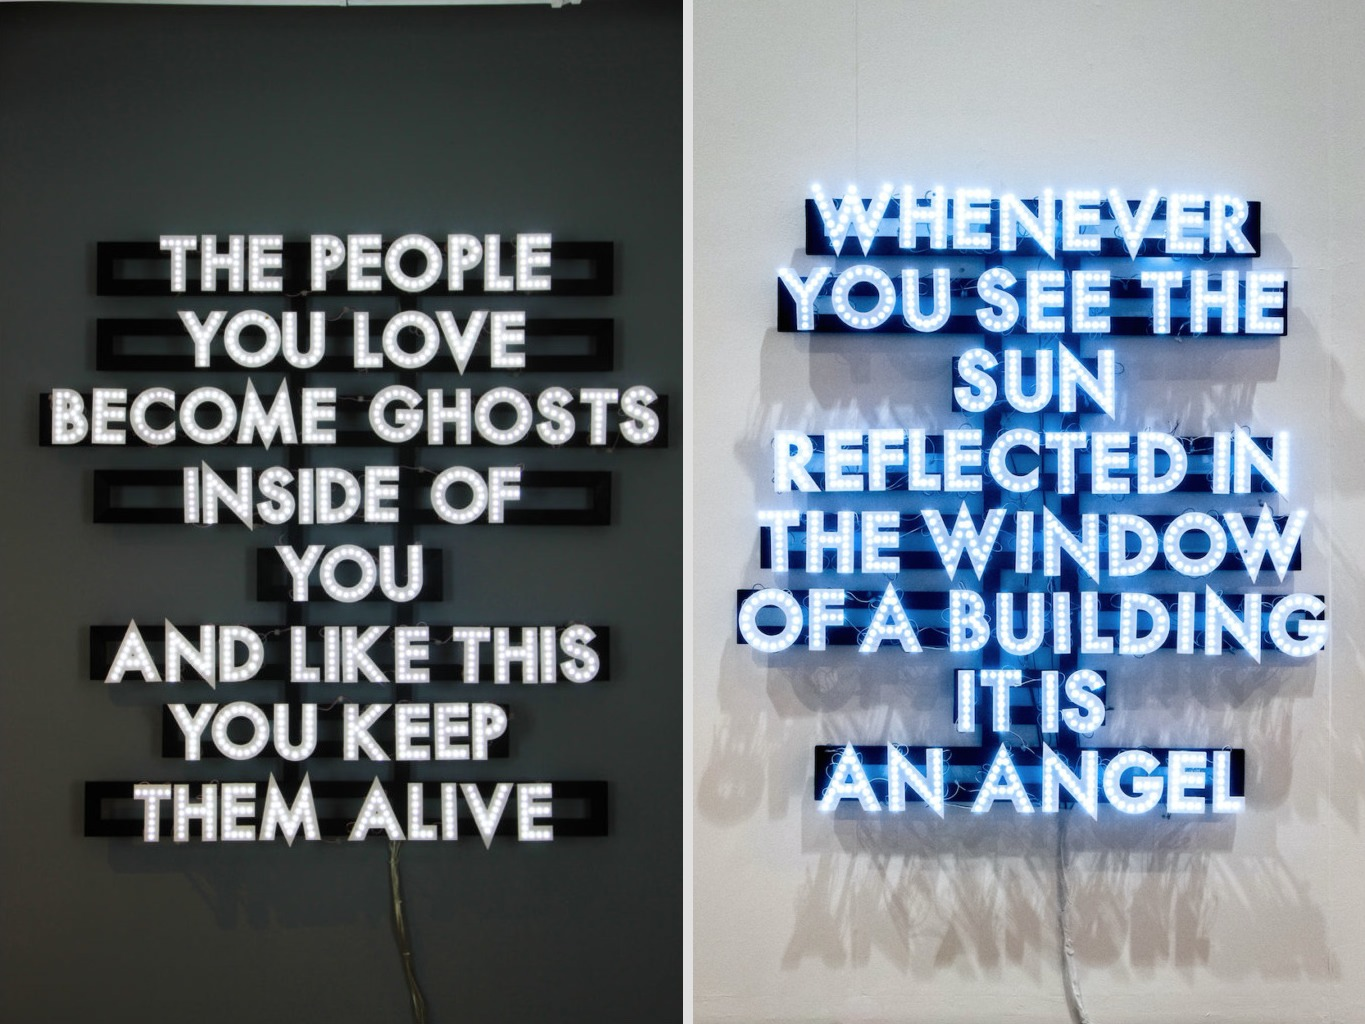 Robert Montgomery at JD Malat Gallery in London